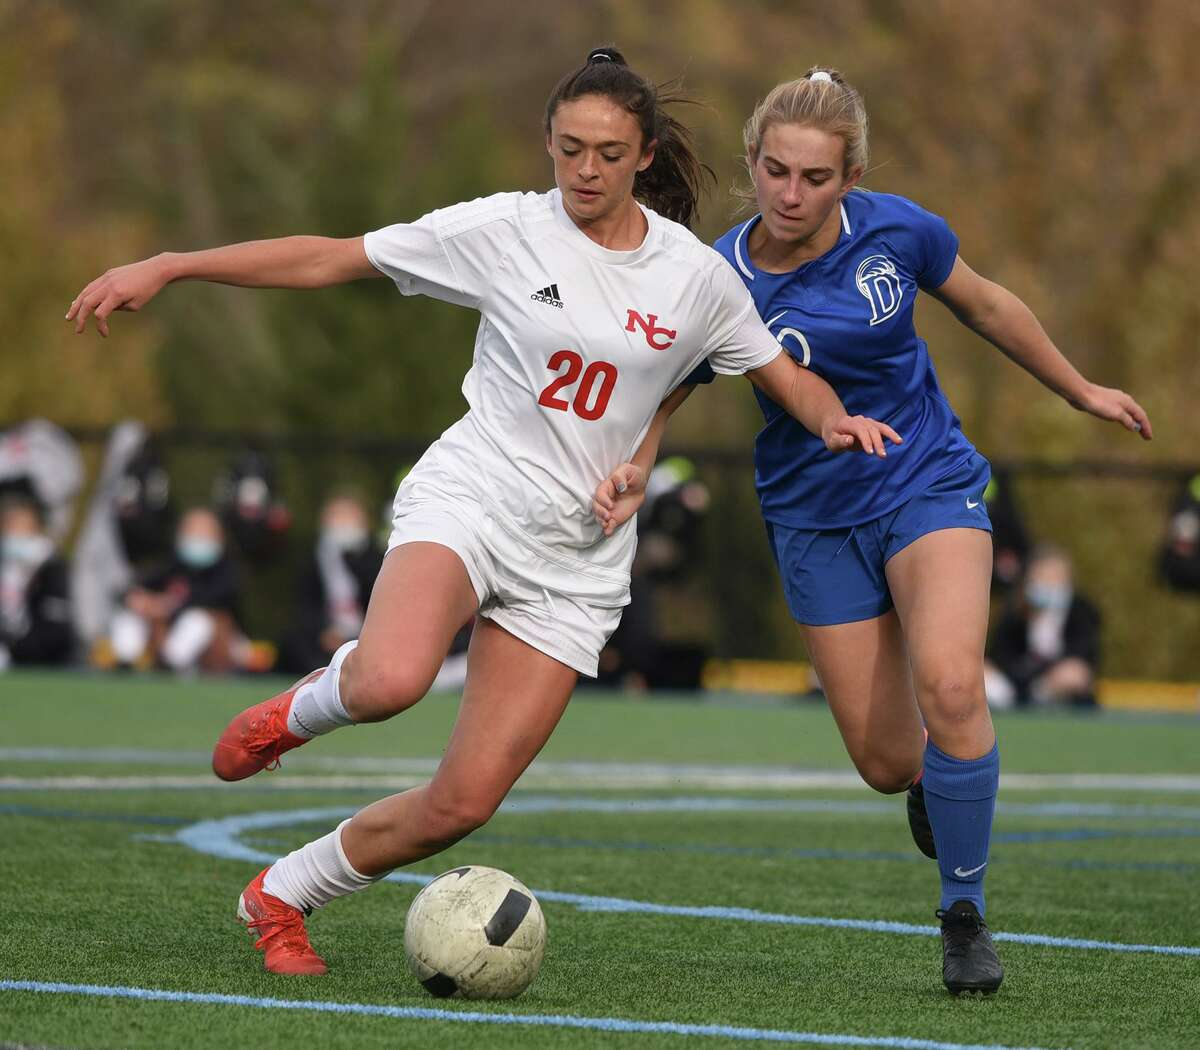 New Canaan's Emma Schuh (20) and Darien's Nelle Kniffin battle for the ball on Tuesday.